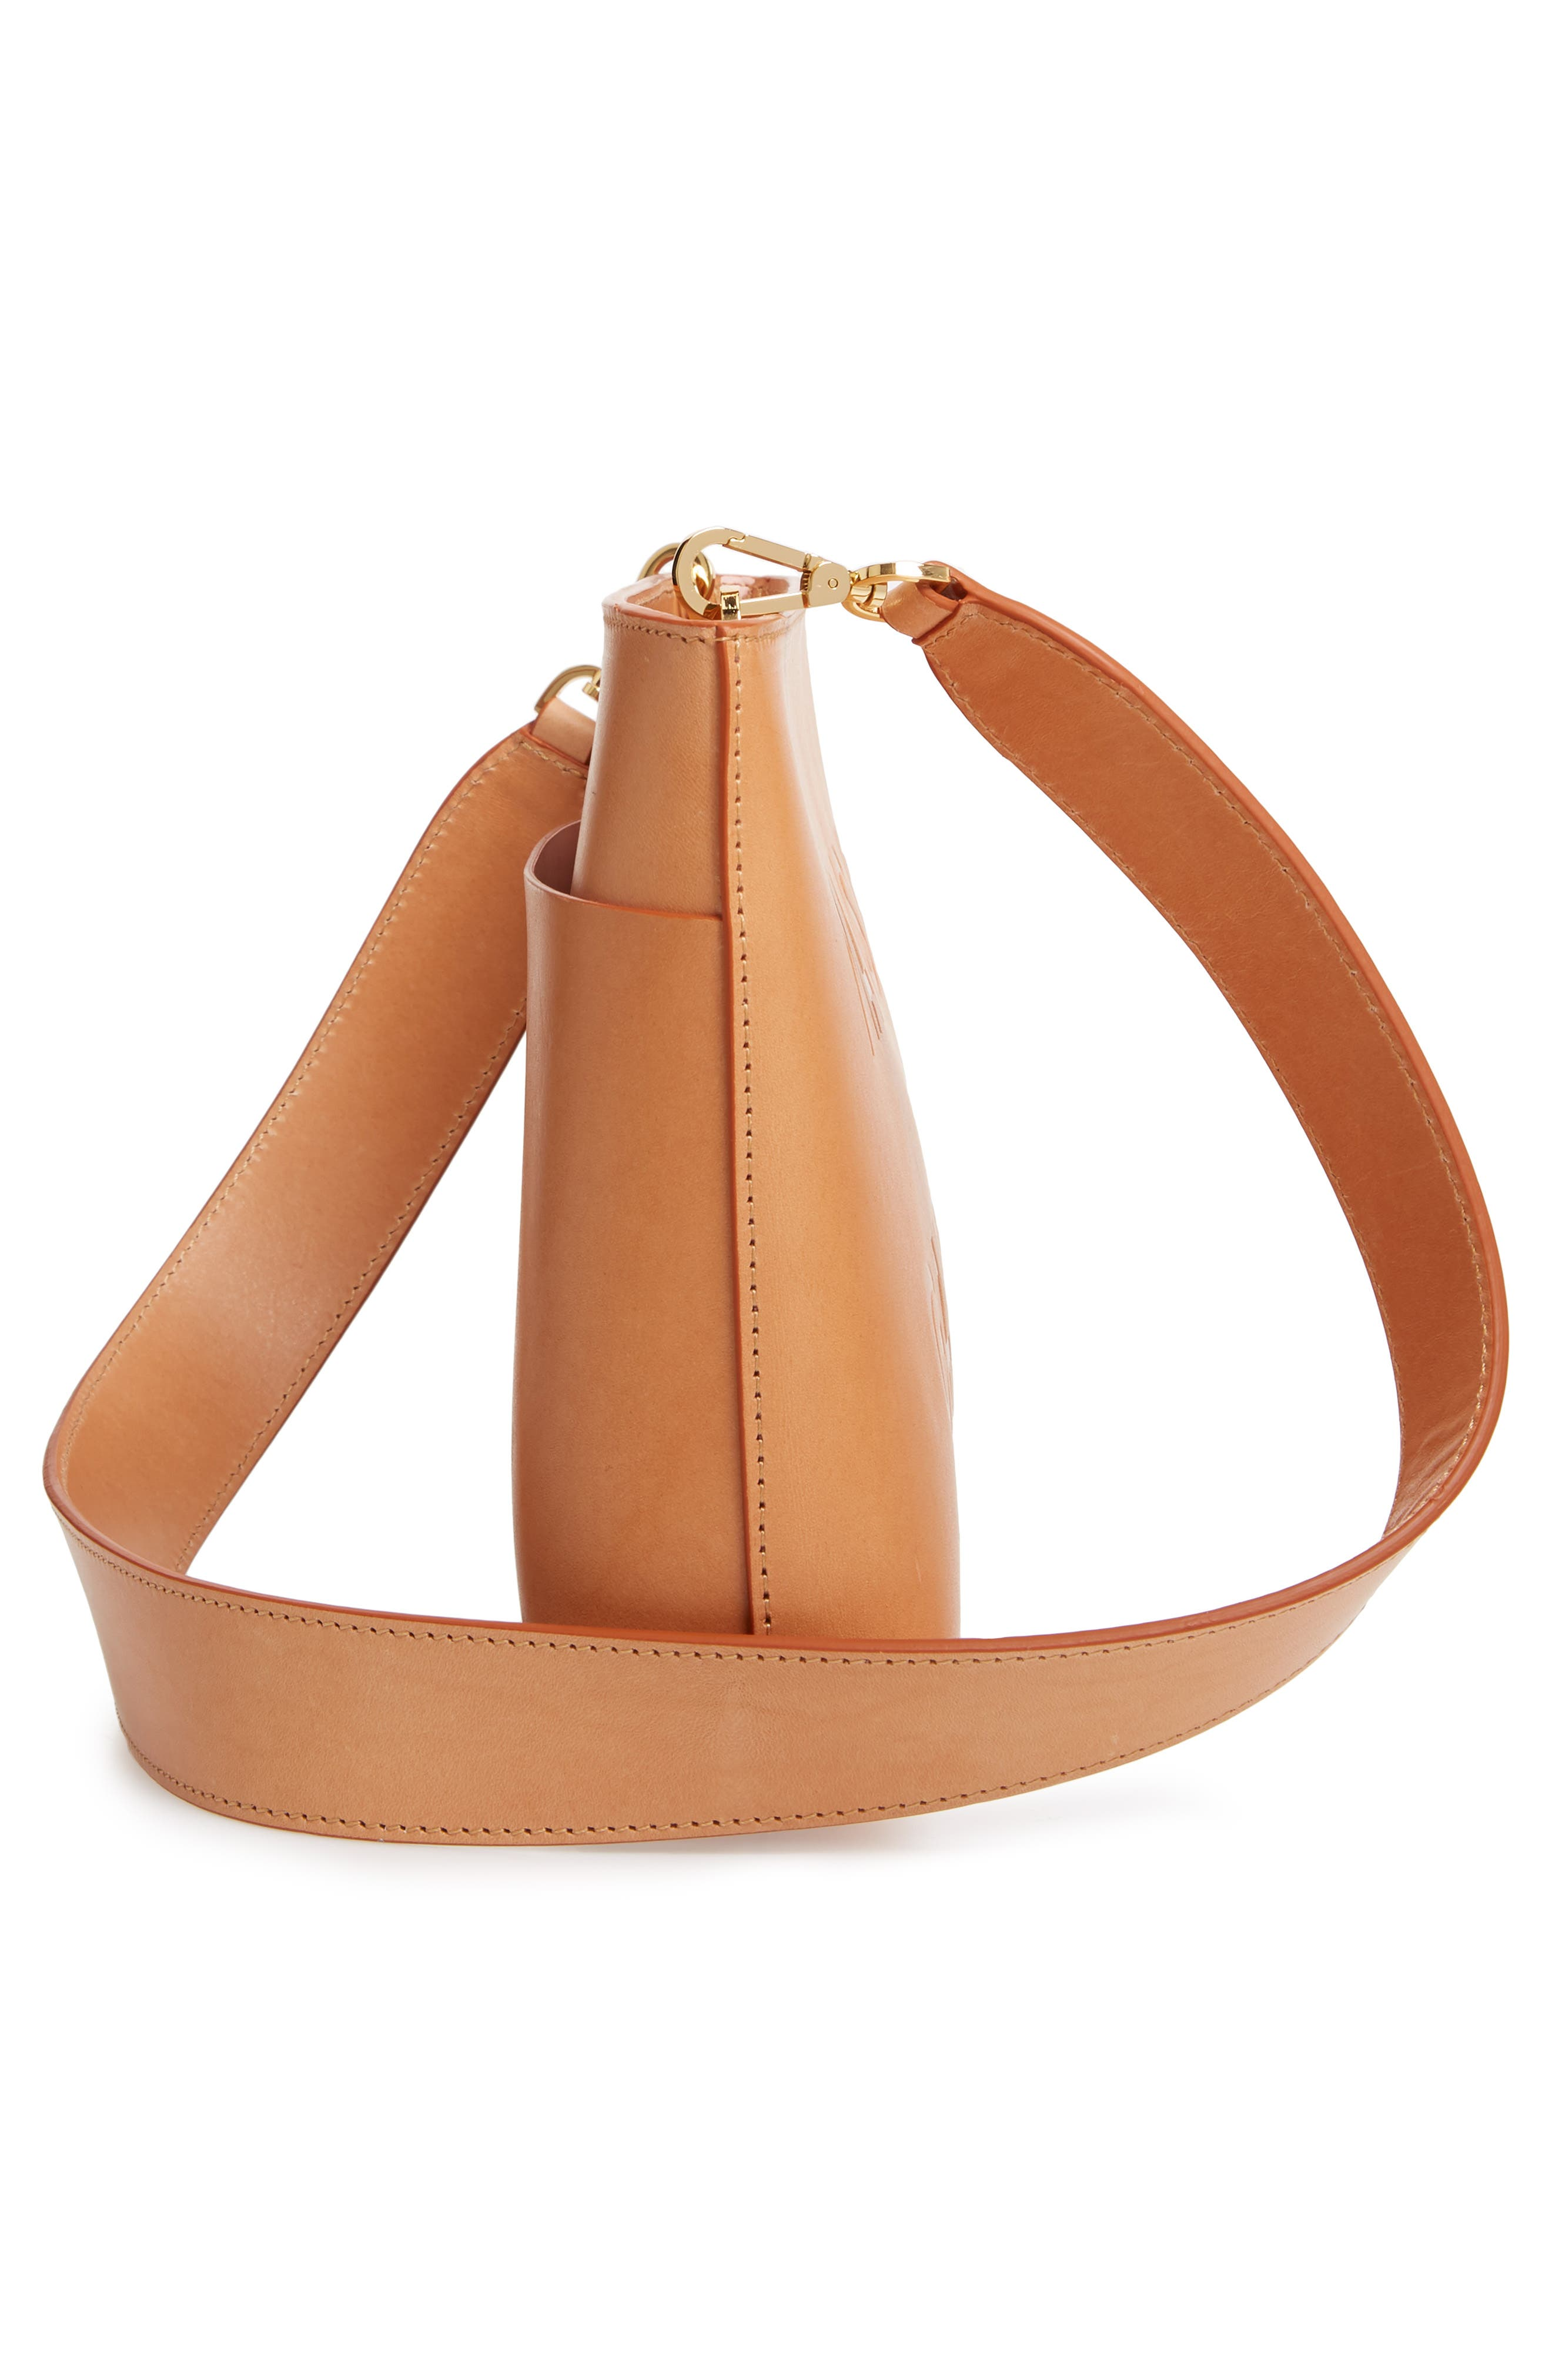 MANSUR GAVRIEL, Logo Leather Crossbody Bag, Alternate thumbnail 5, color, 250